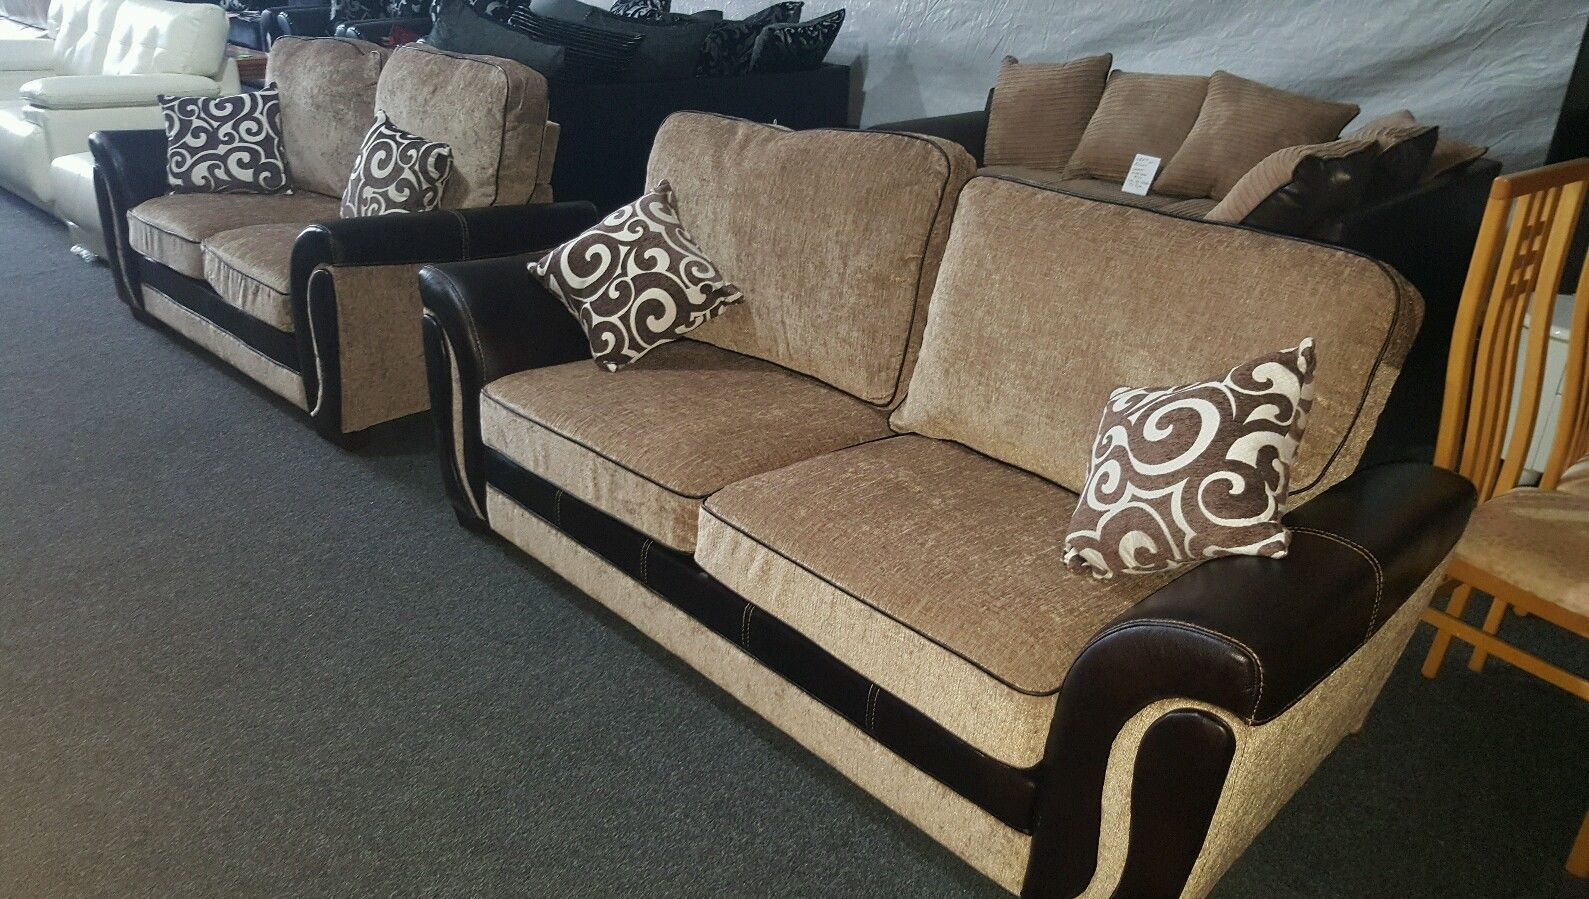 Sofa Set 3 Plus 2 Seater 3 2 Beige Brown Great Quality With Pocket